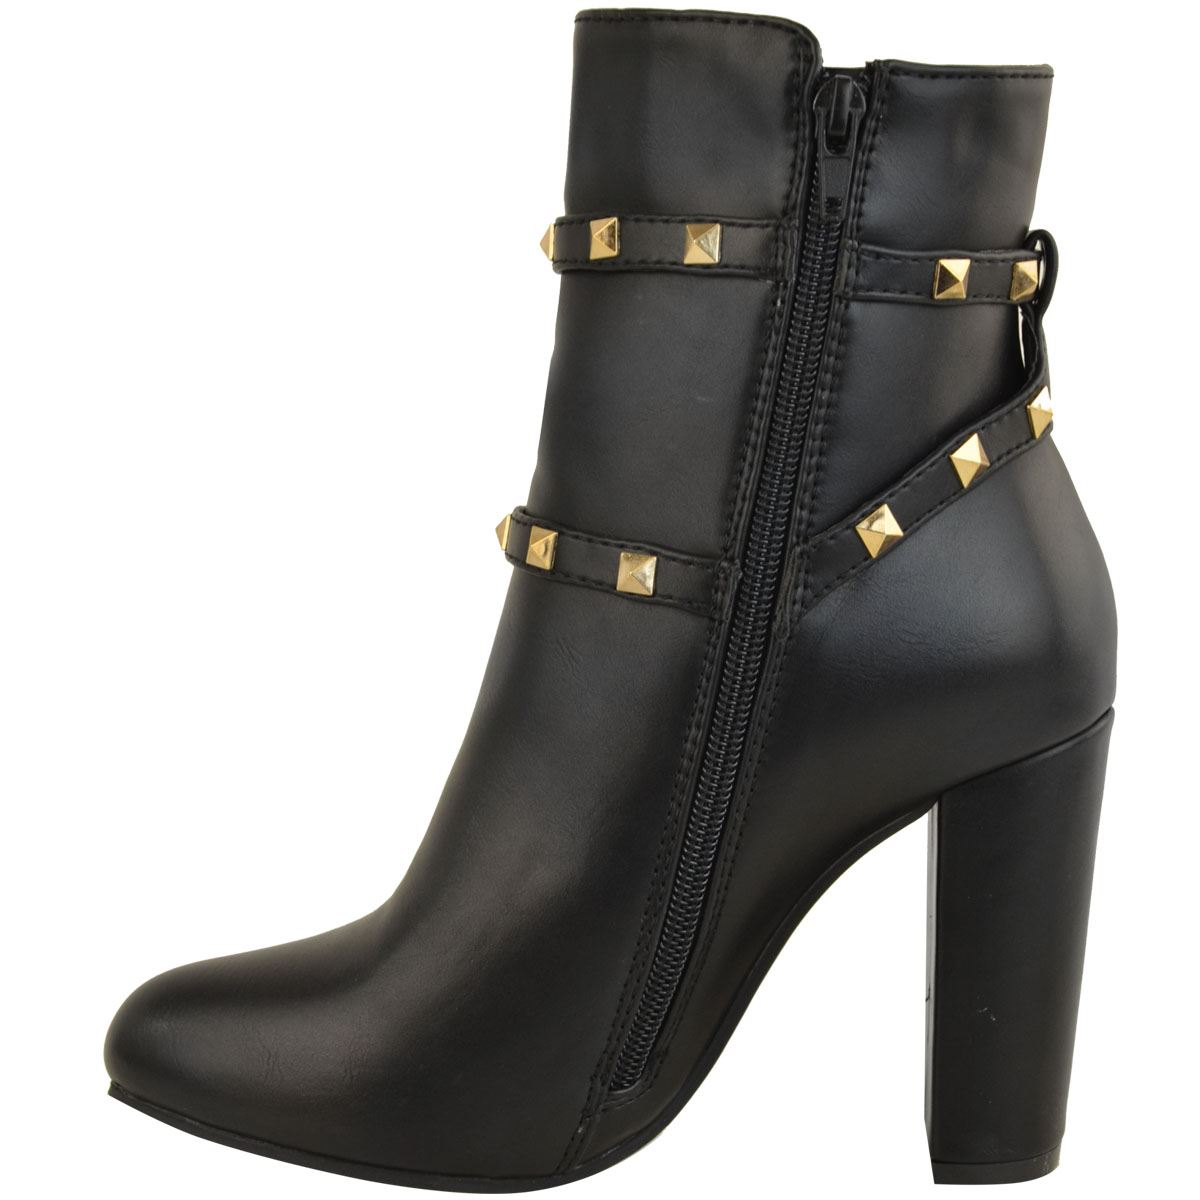 thumbnail 19 - WOMENS-LADIES-LOW-BLOCK-HEEL-CHELSEA-ANKLE-BOOTS-CUT-OUT-LACE-UP-SHOES-NEW-SIZE